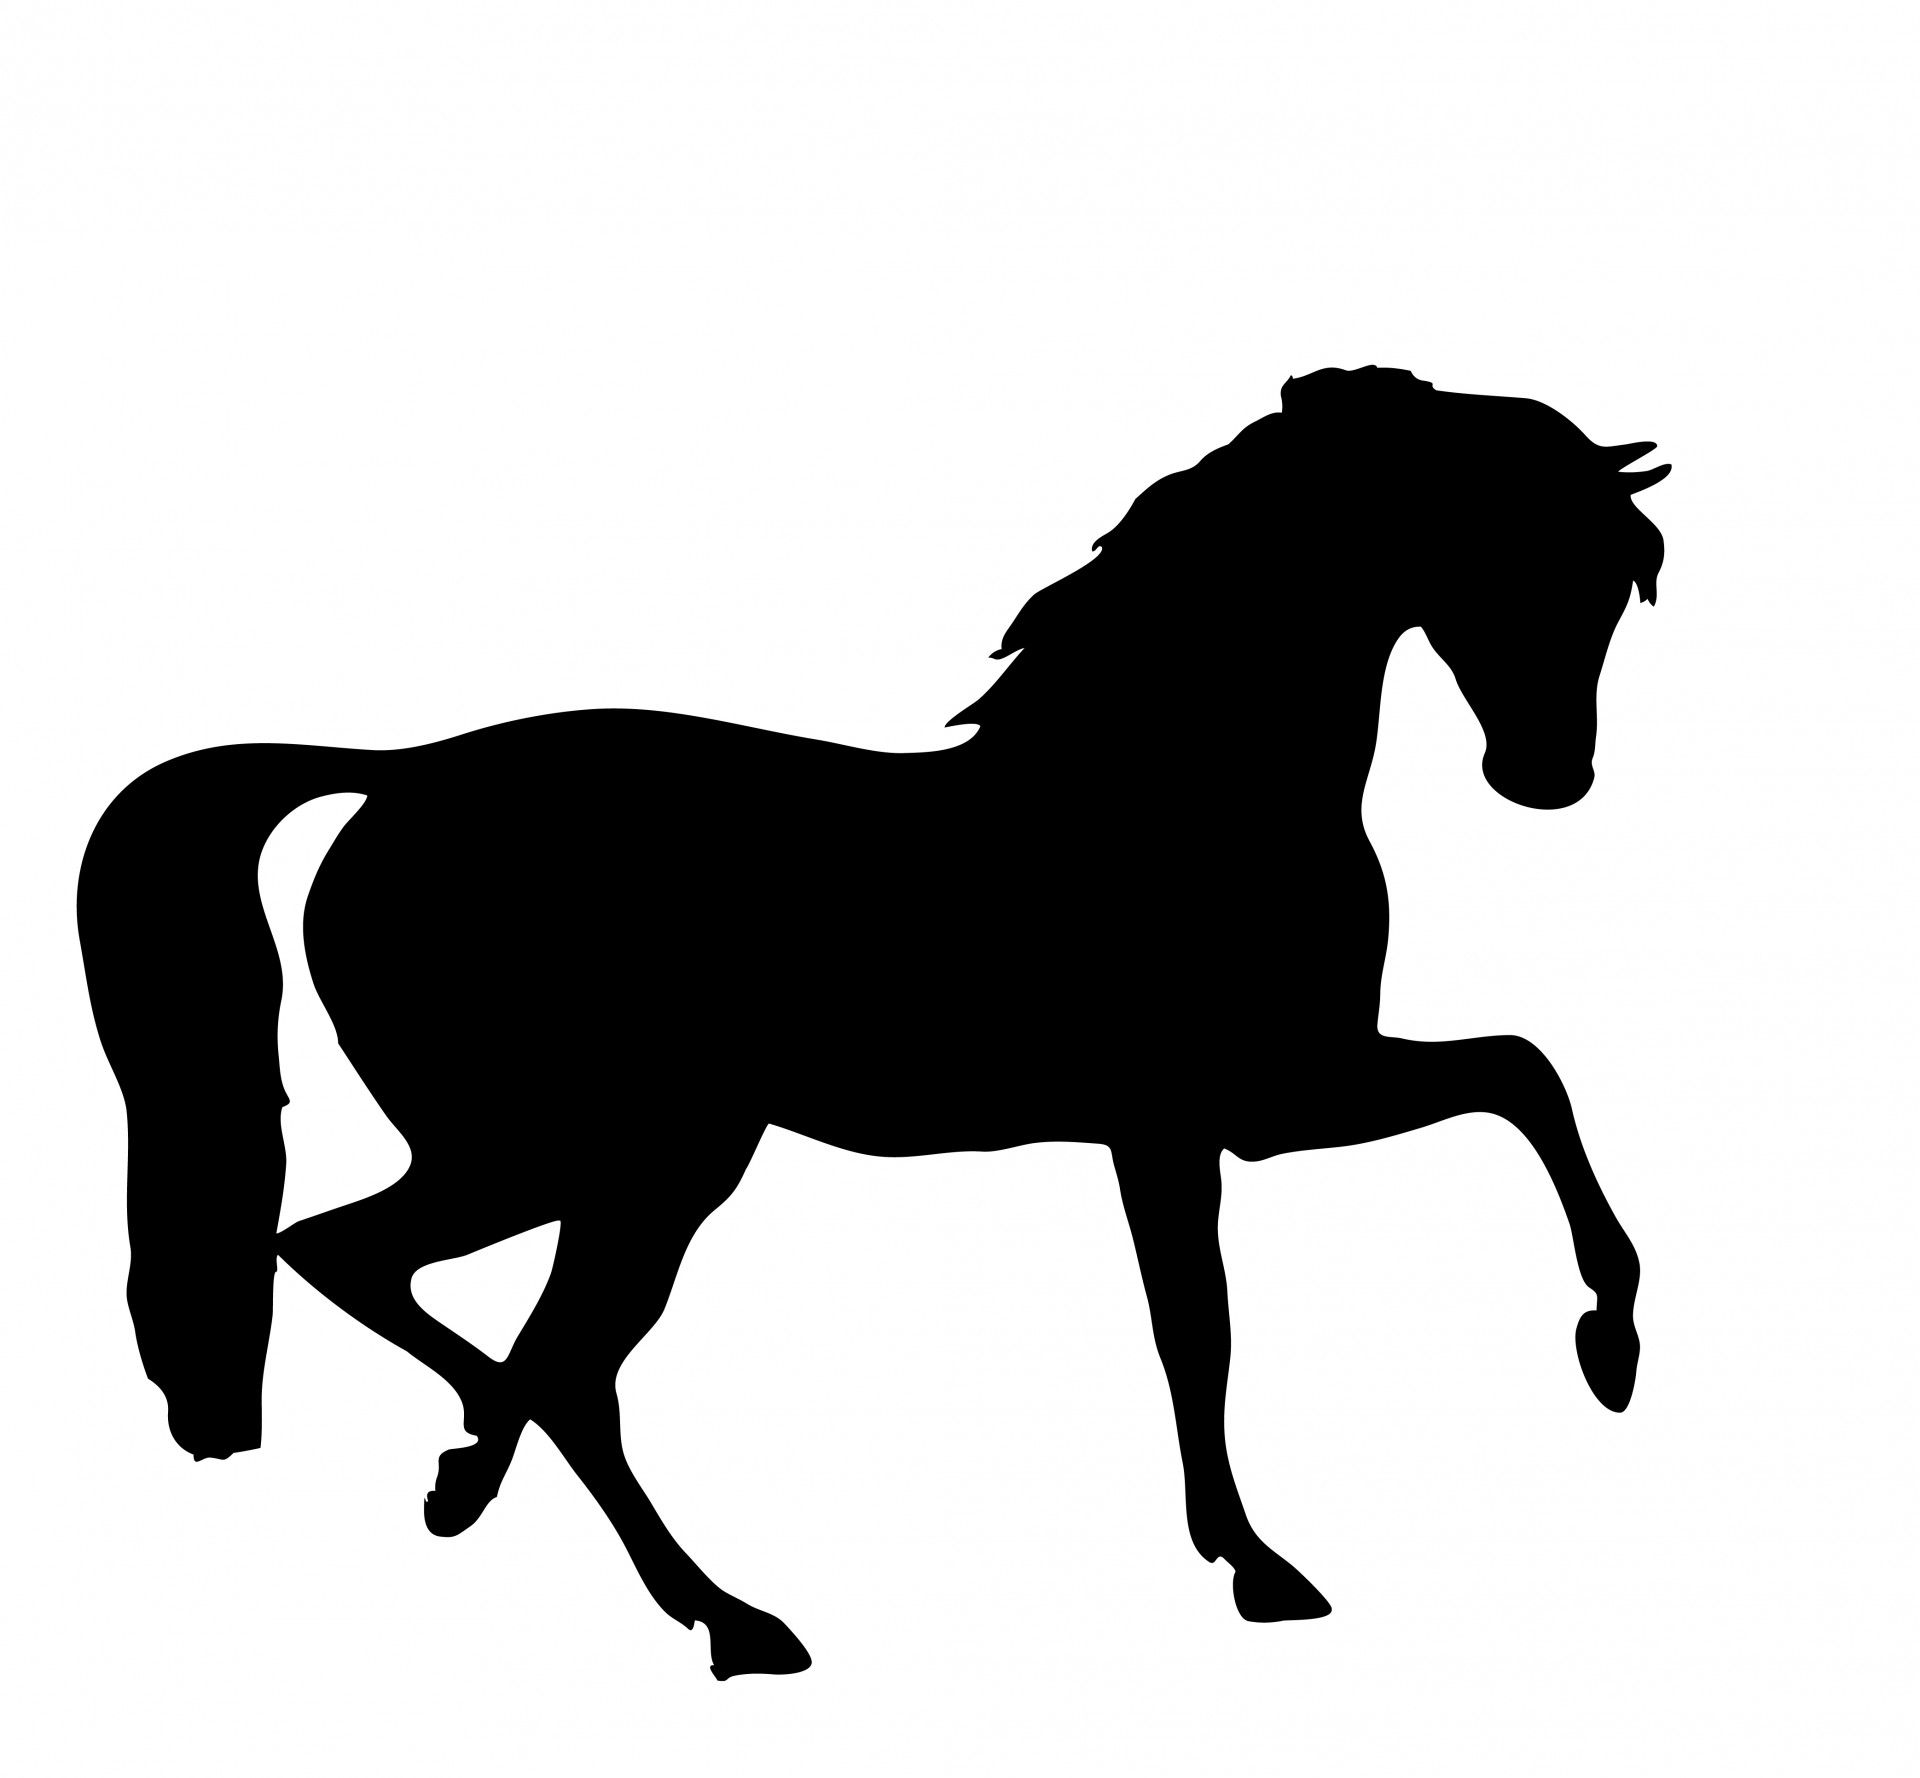 carousel horse silhouette clip art at getdrawings com free for rh getdrawings com clip art of horses and cowboys clip art of horseshoes